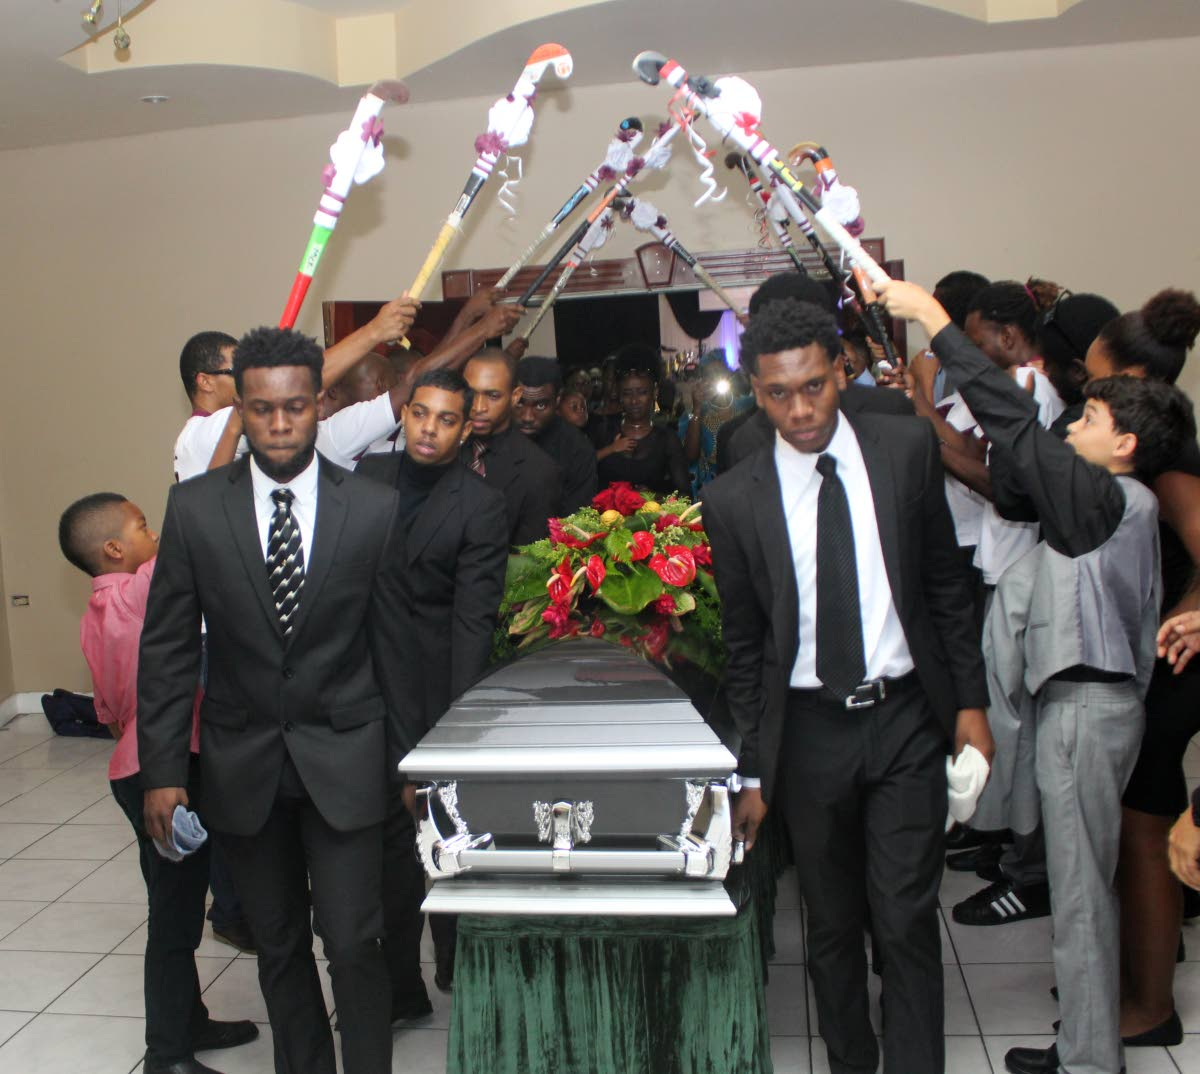 The brothers of Kwasi Emmanuel, Keiron, left, and Kristien, right, carry his casket at his funeral service at Faith Assembly Church yesterday in Five Rivers. PHOTO BY ENRIQUE ASSOON